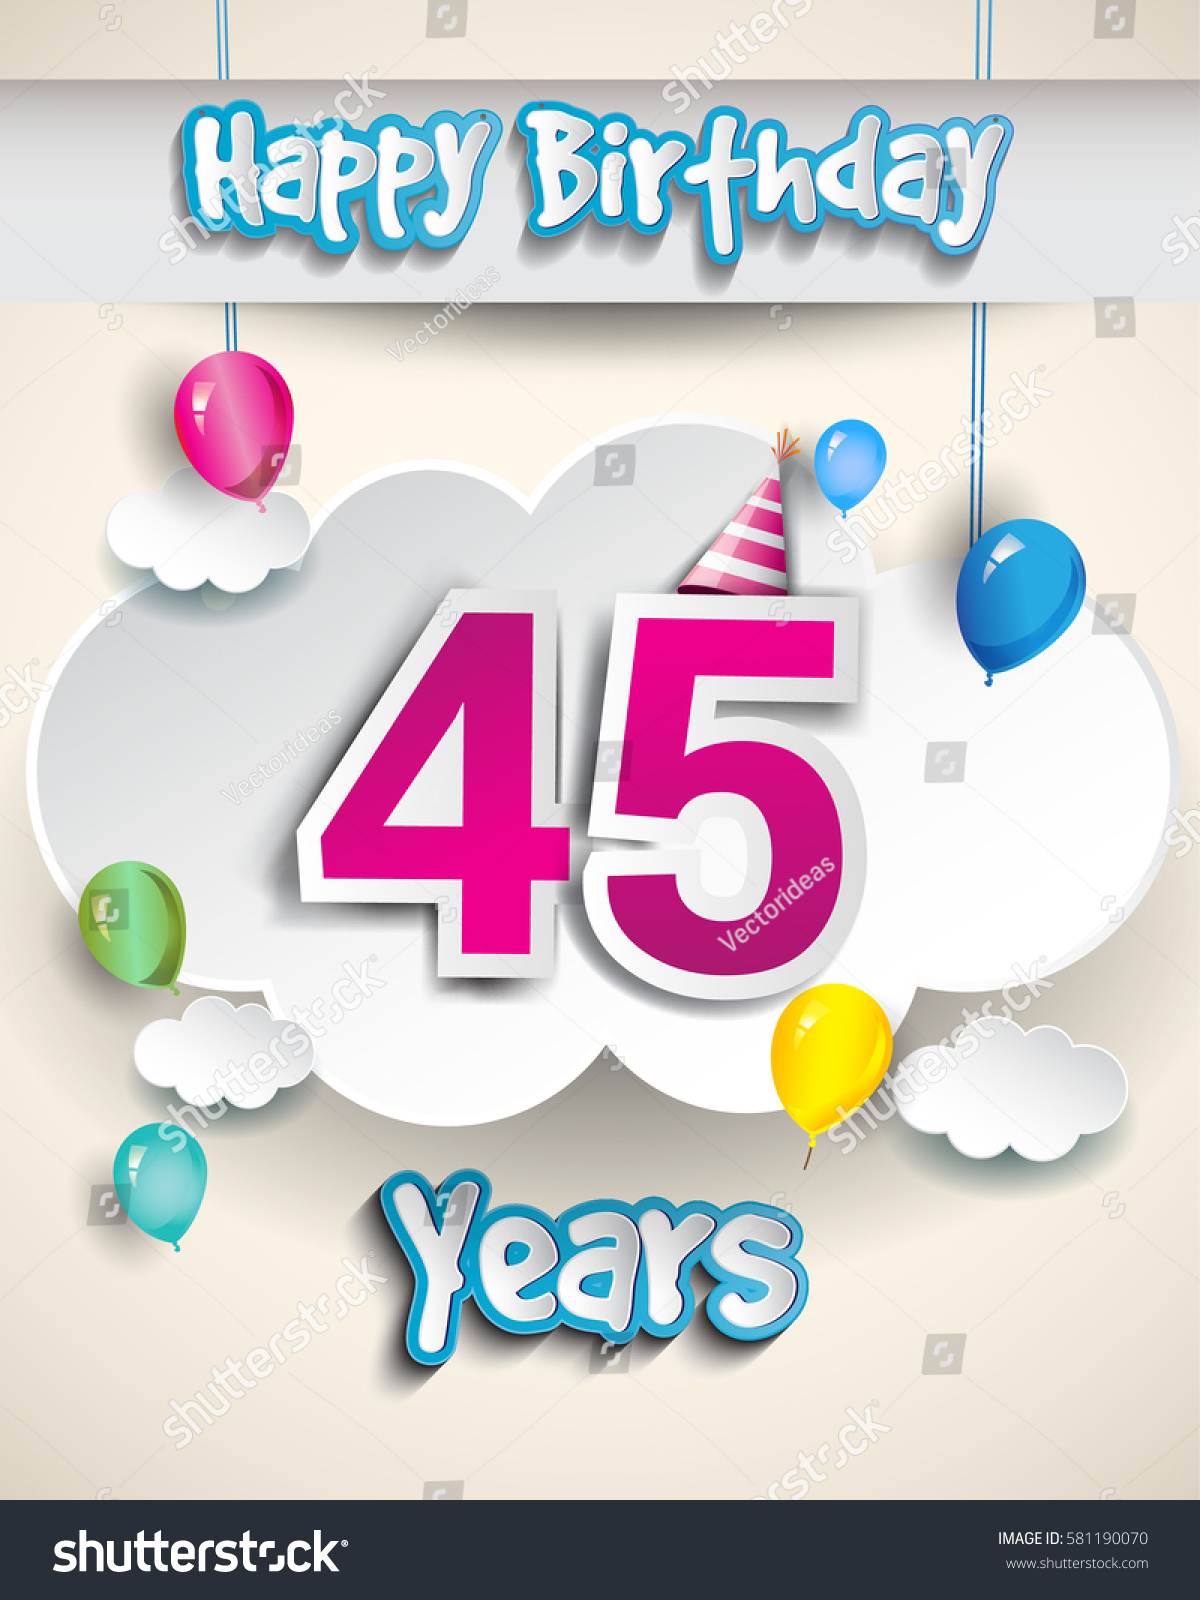 45th Birthday Celebration Design With Clouds And Balloons Greeting Card Invitation For